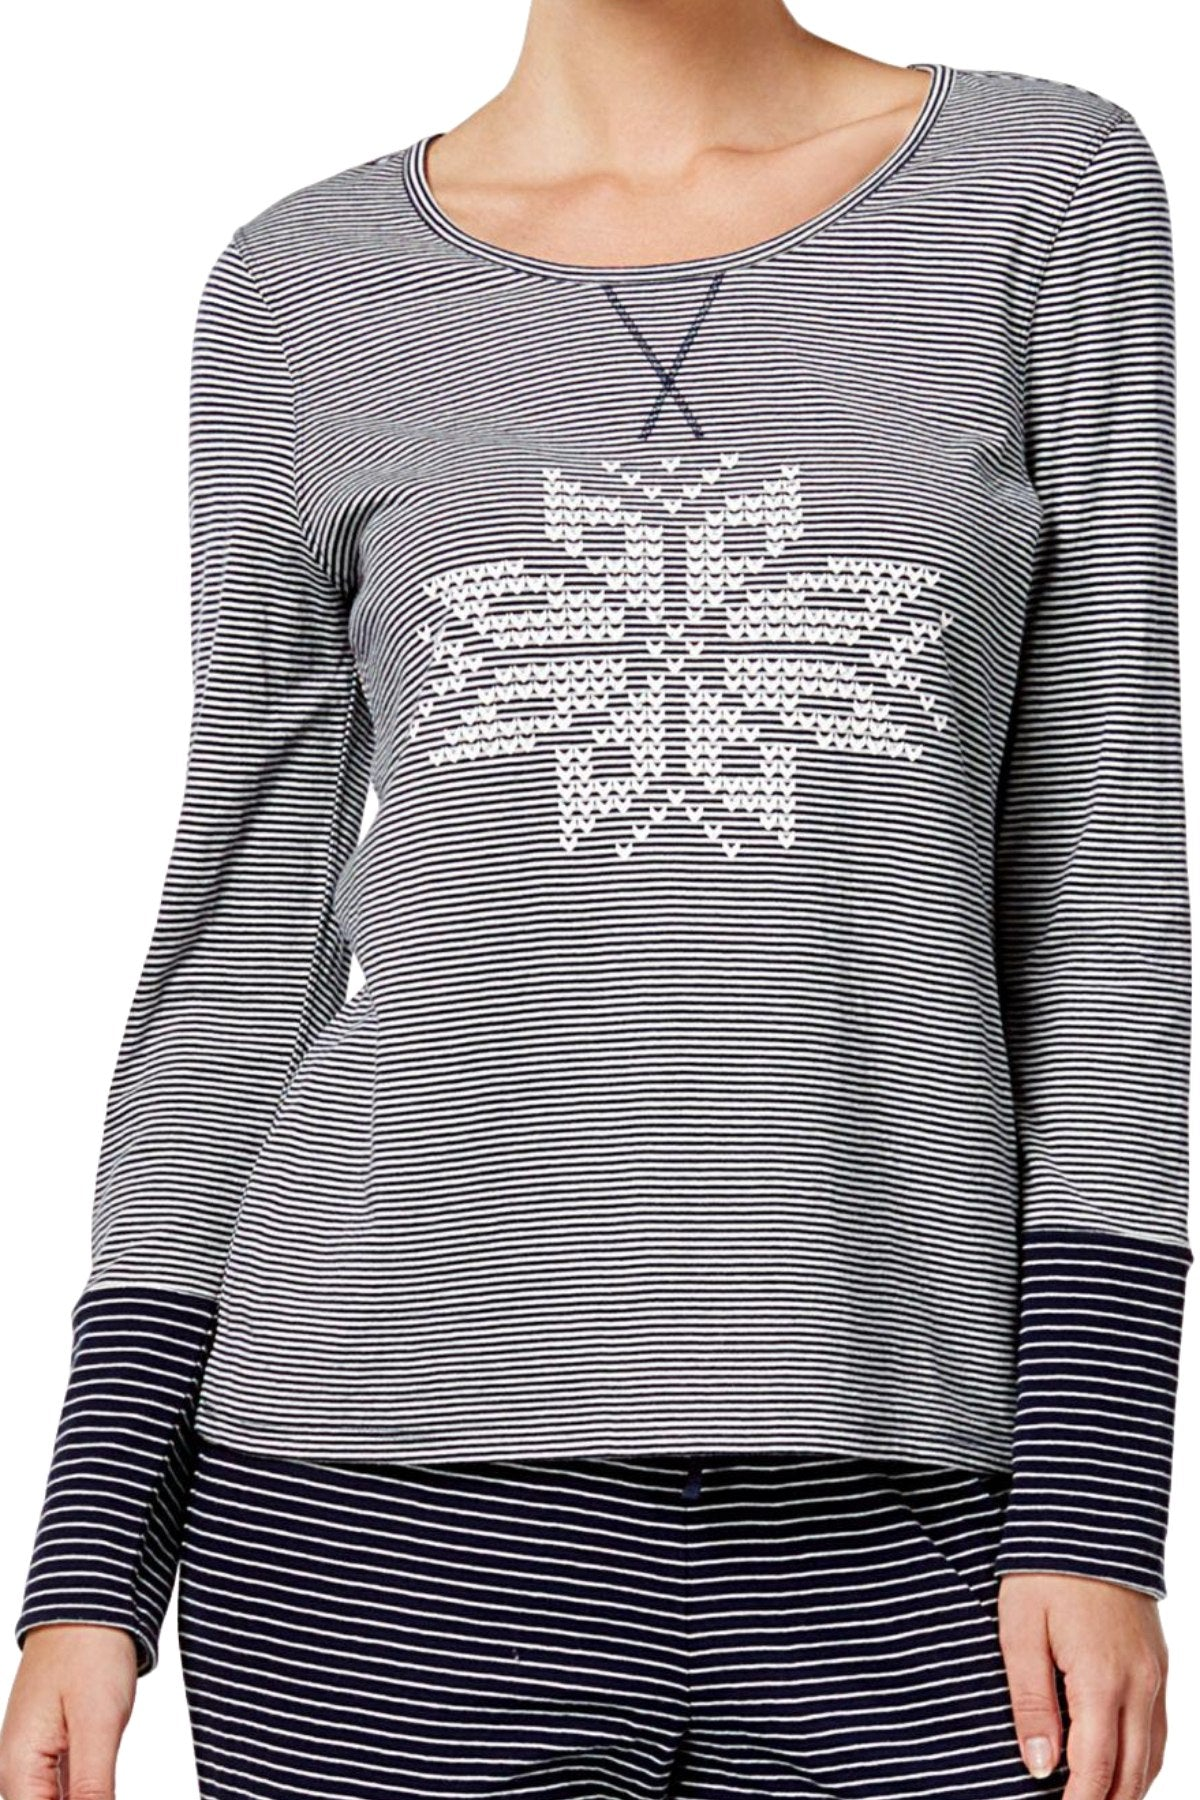 Nautica Navy Stripe/Snowflake Reversible Lounge Top